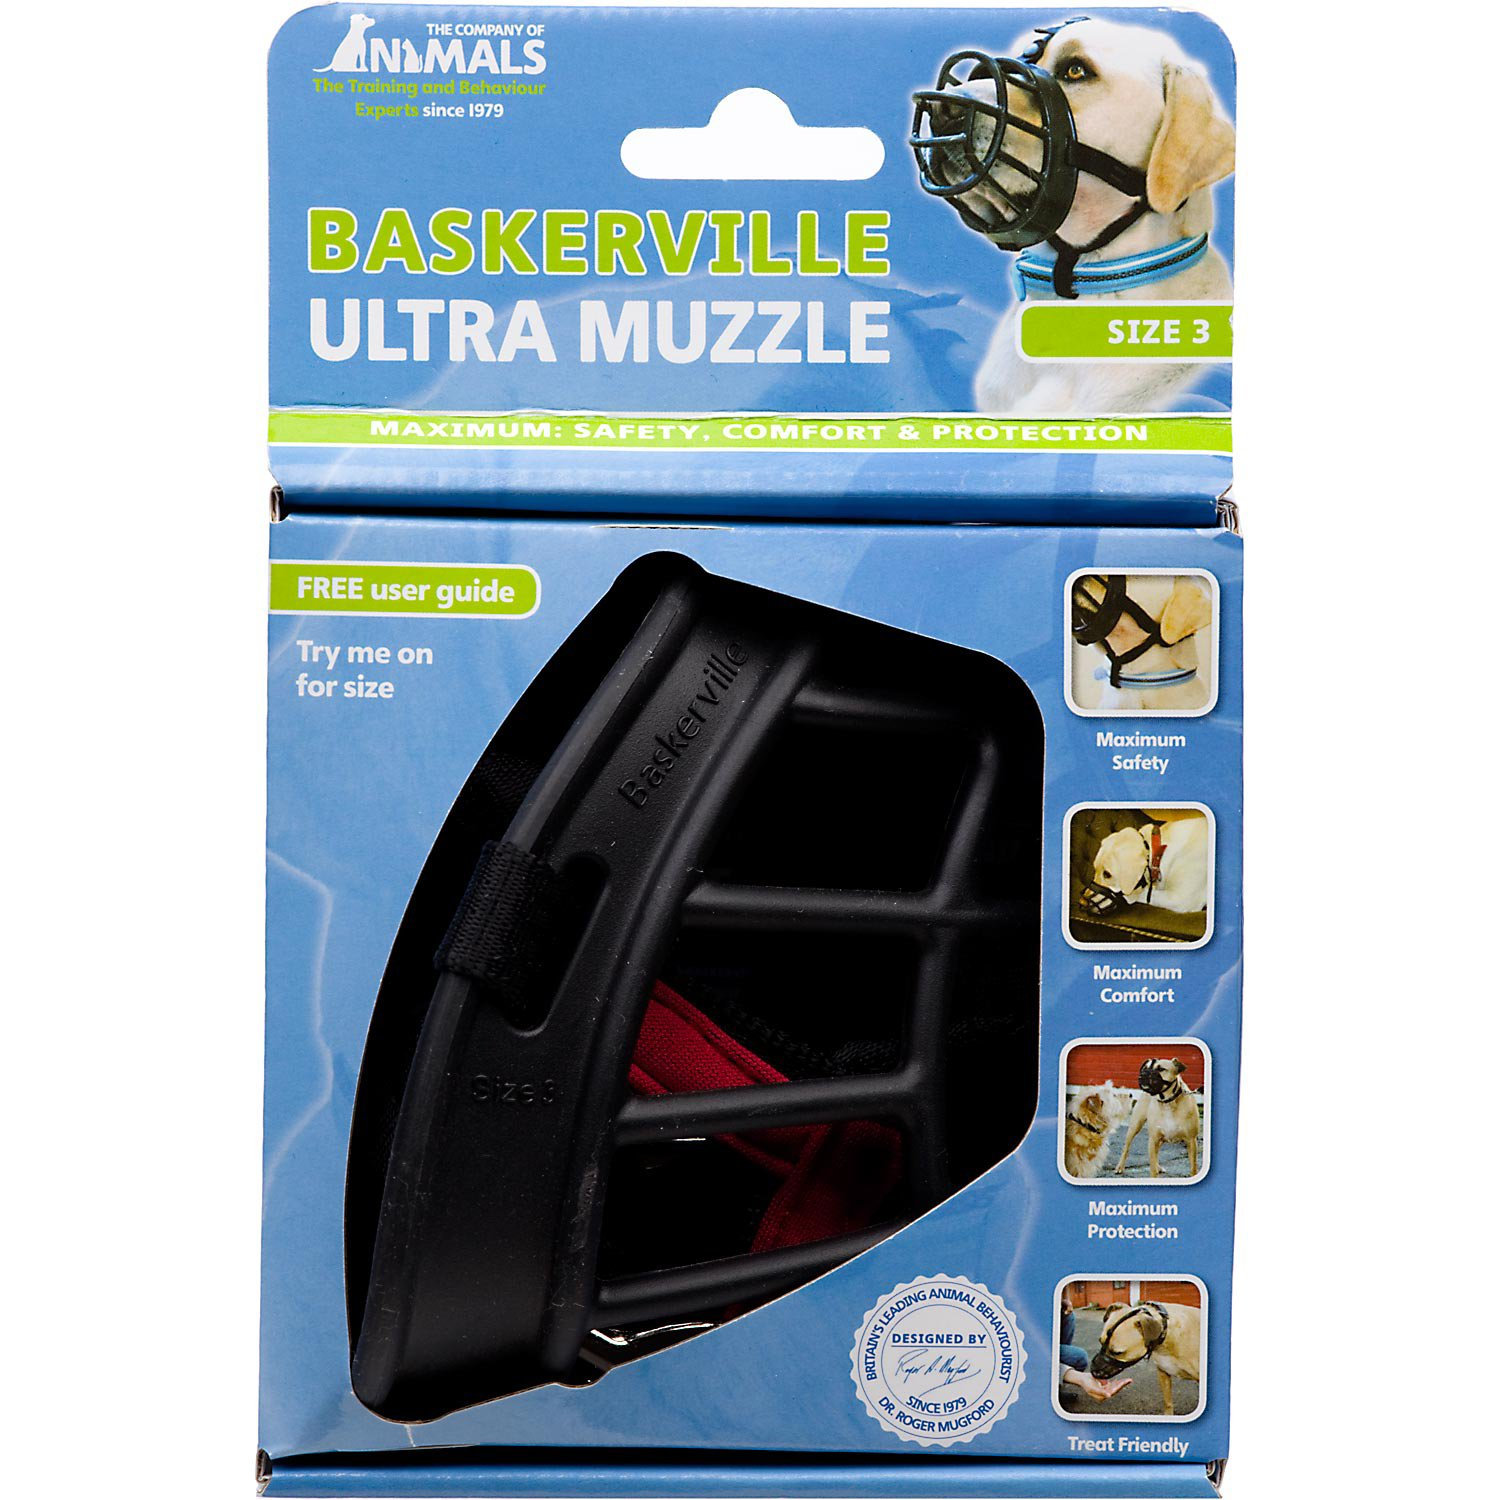 The Company Of Animals Baskerville Ultra Muzzle For Dogs, 3, Black